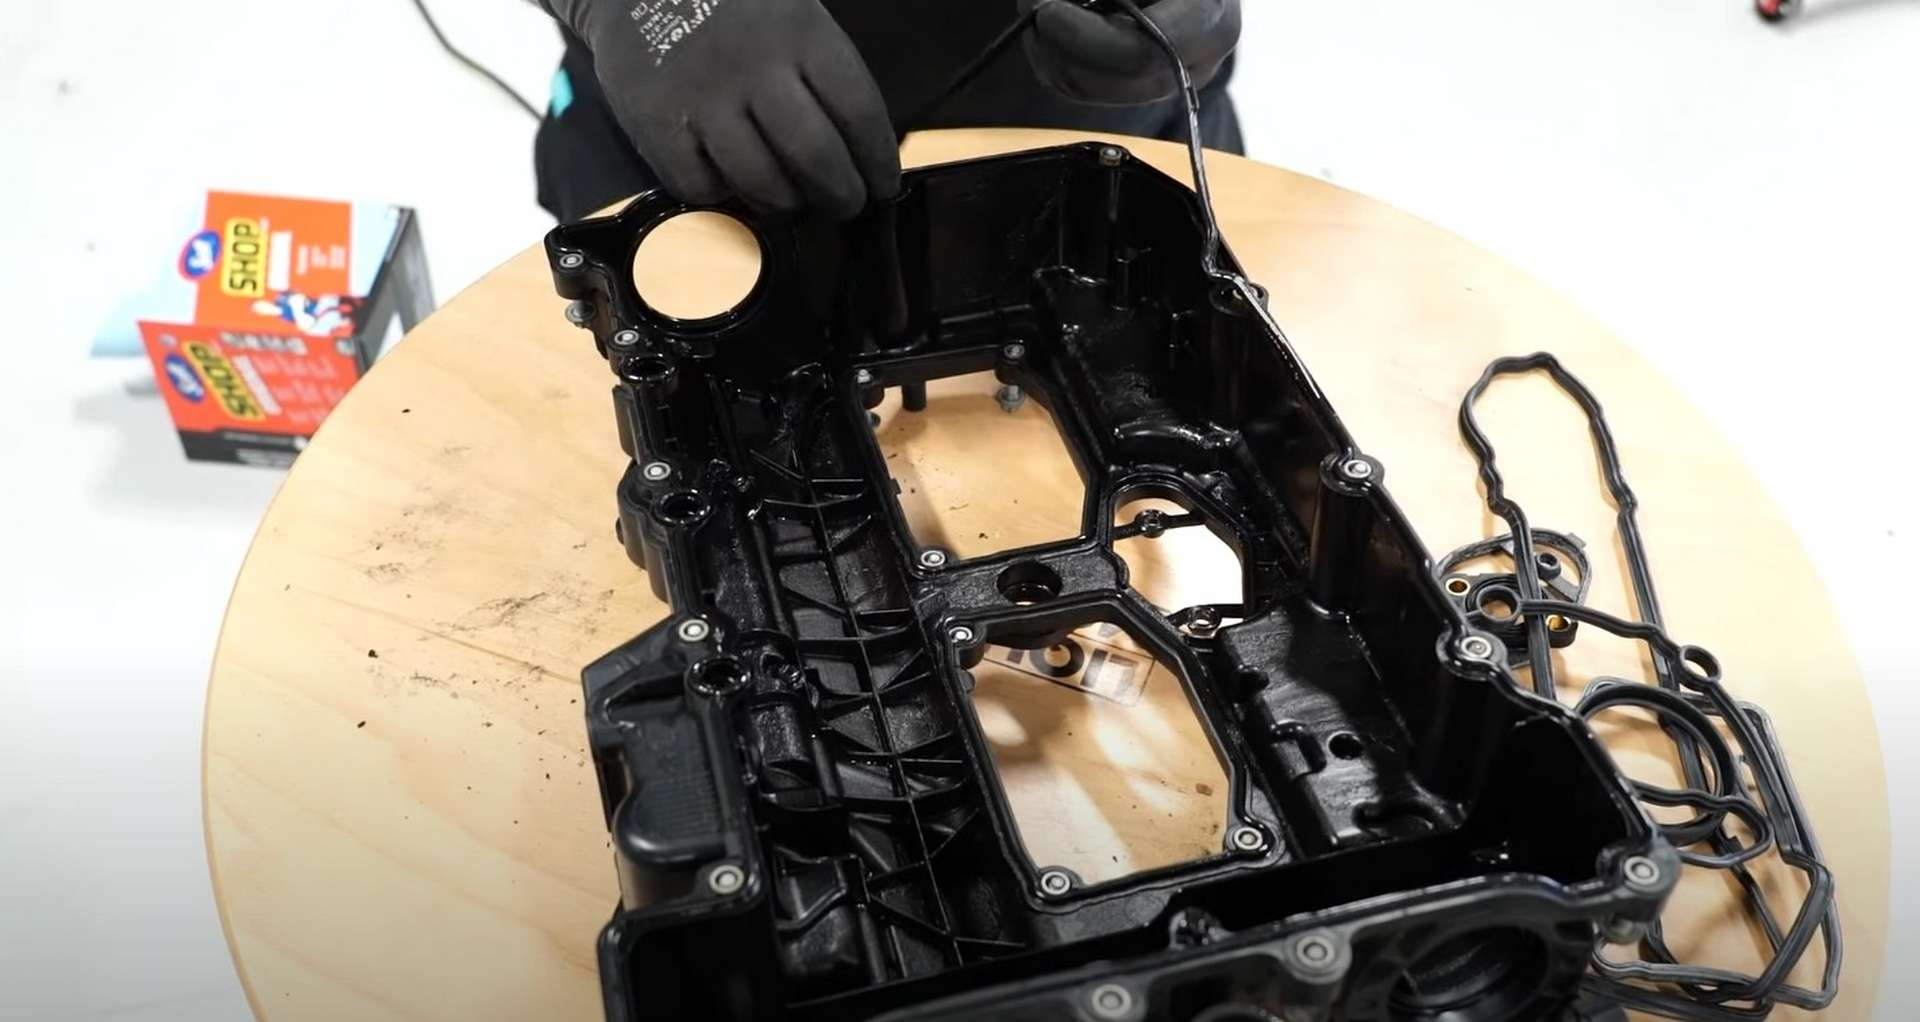 22-DIY-BMW-F30-Valve-Cover-Replacement_Replacing-Valve-Cover